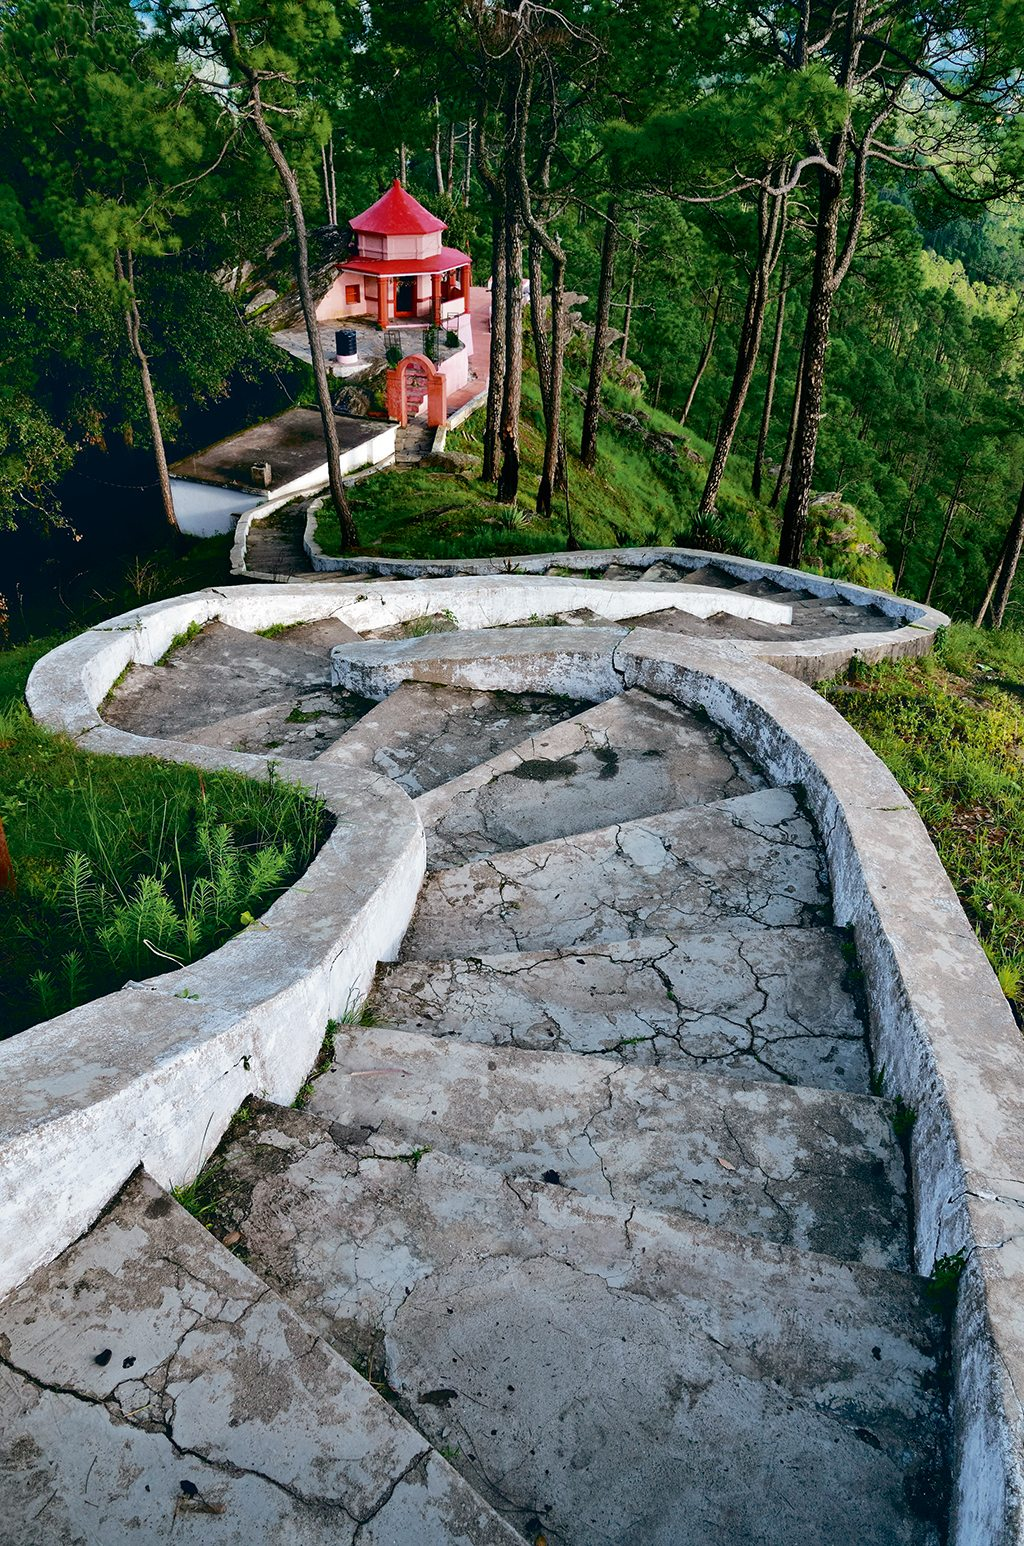 Kasar Devi temple, amidst verdant pine and deodar forests, is an ancient shrine dedicated to an avatar of the Goddess Shakti. Photo: Oleksandr Rupeta/Age Fotostock/Dinodia Photo Library